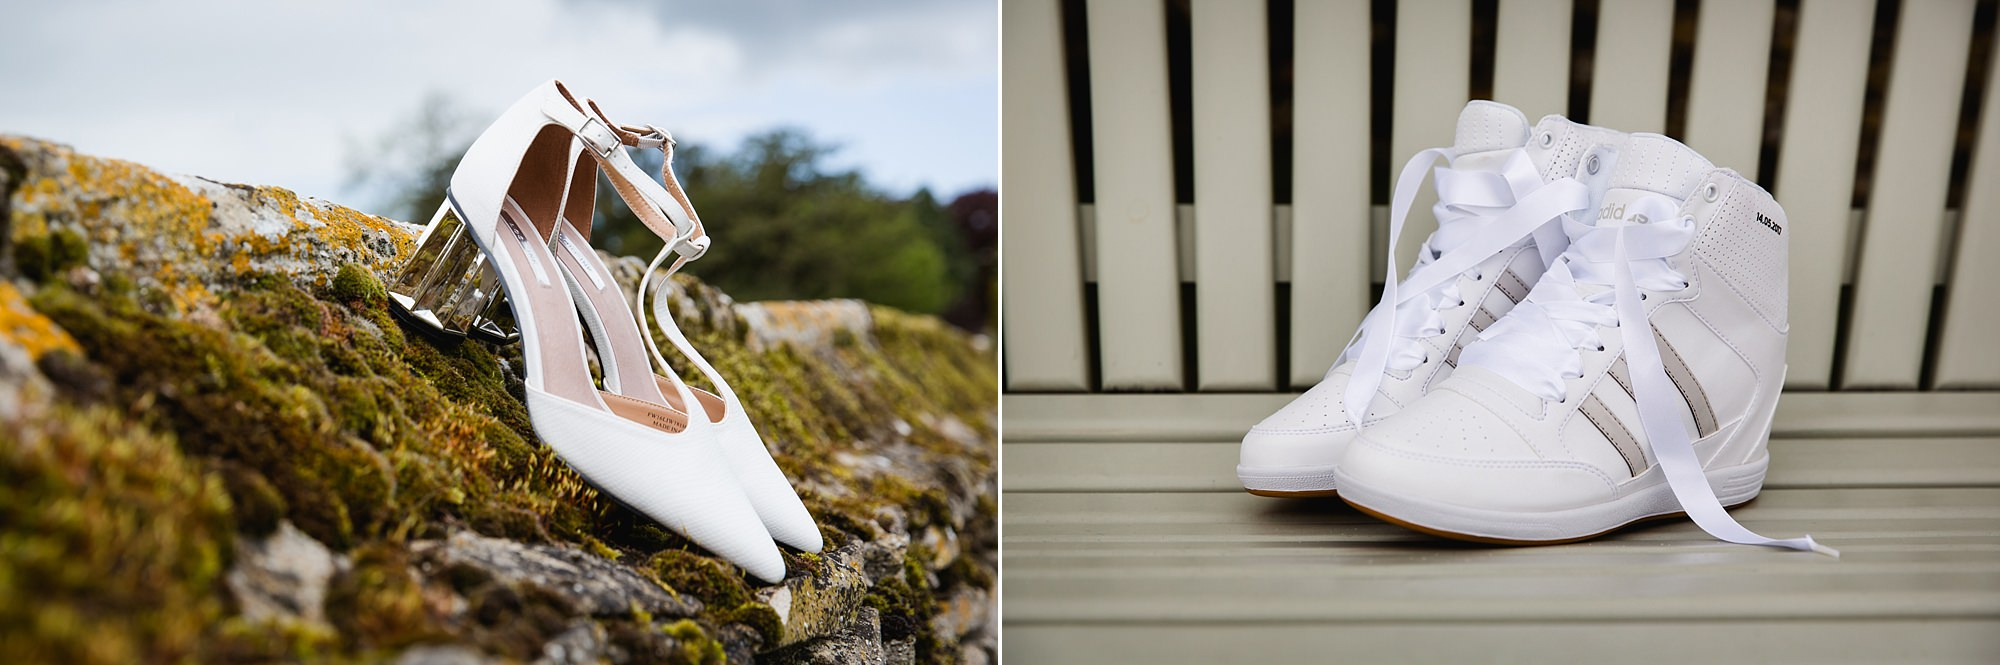 Caswell House Wedding detail image of bride's shoes and trainers